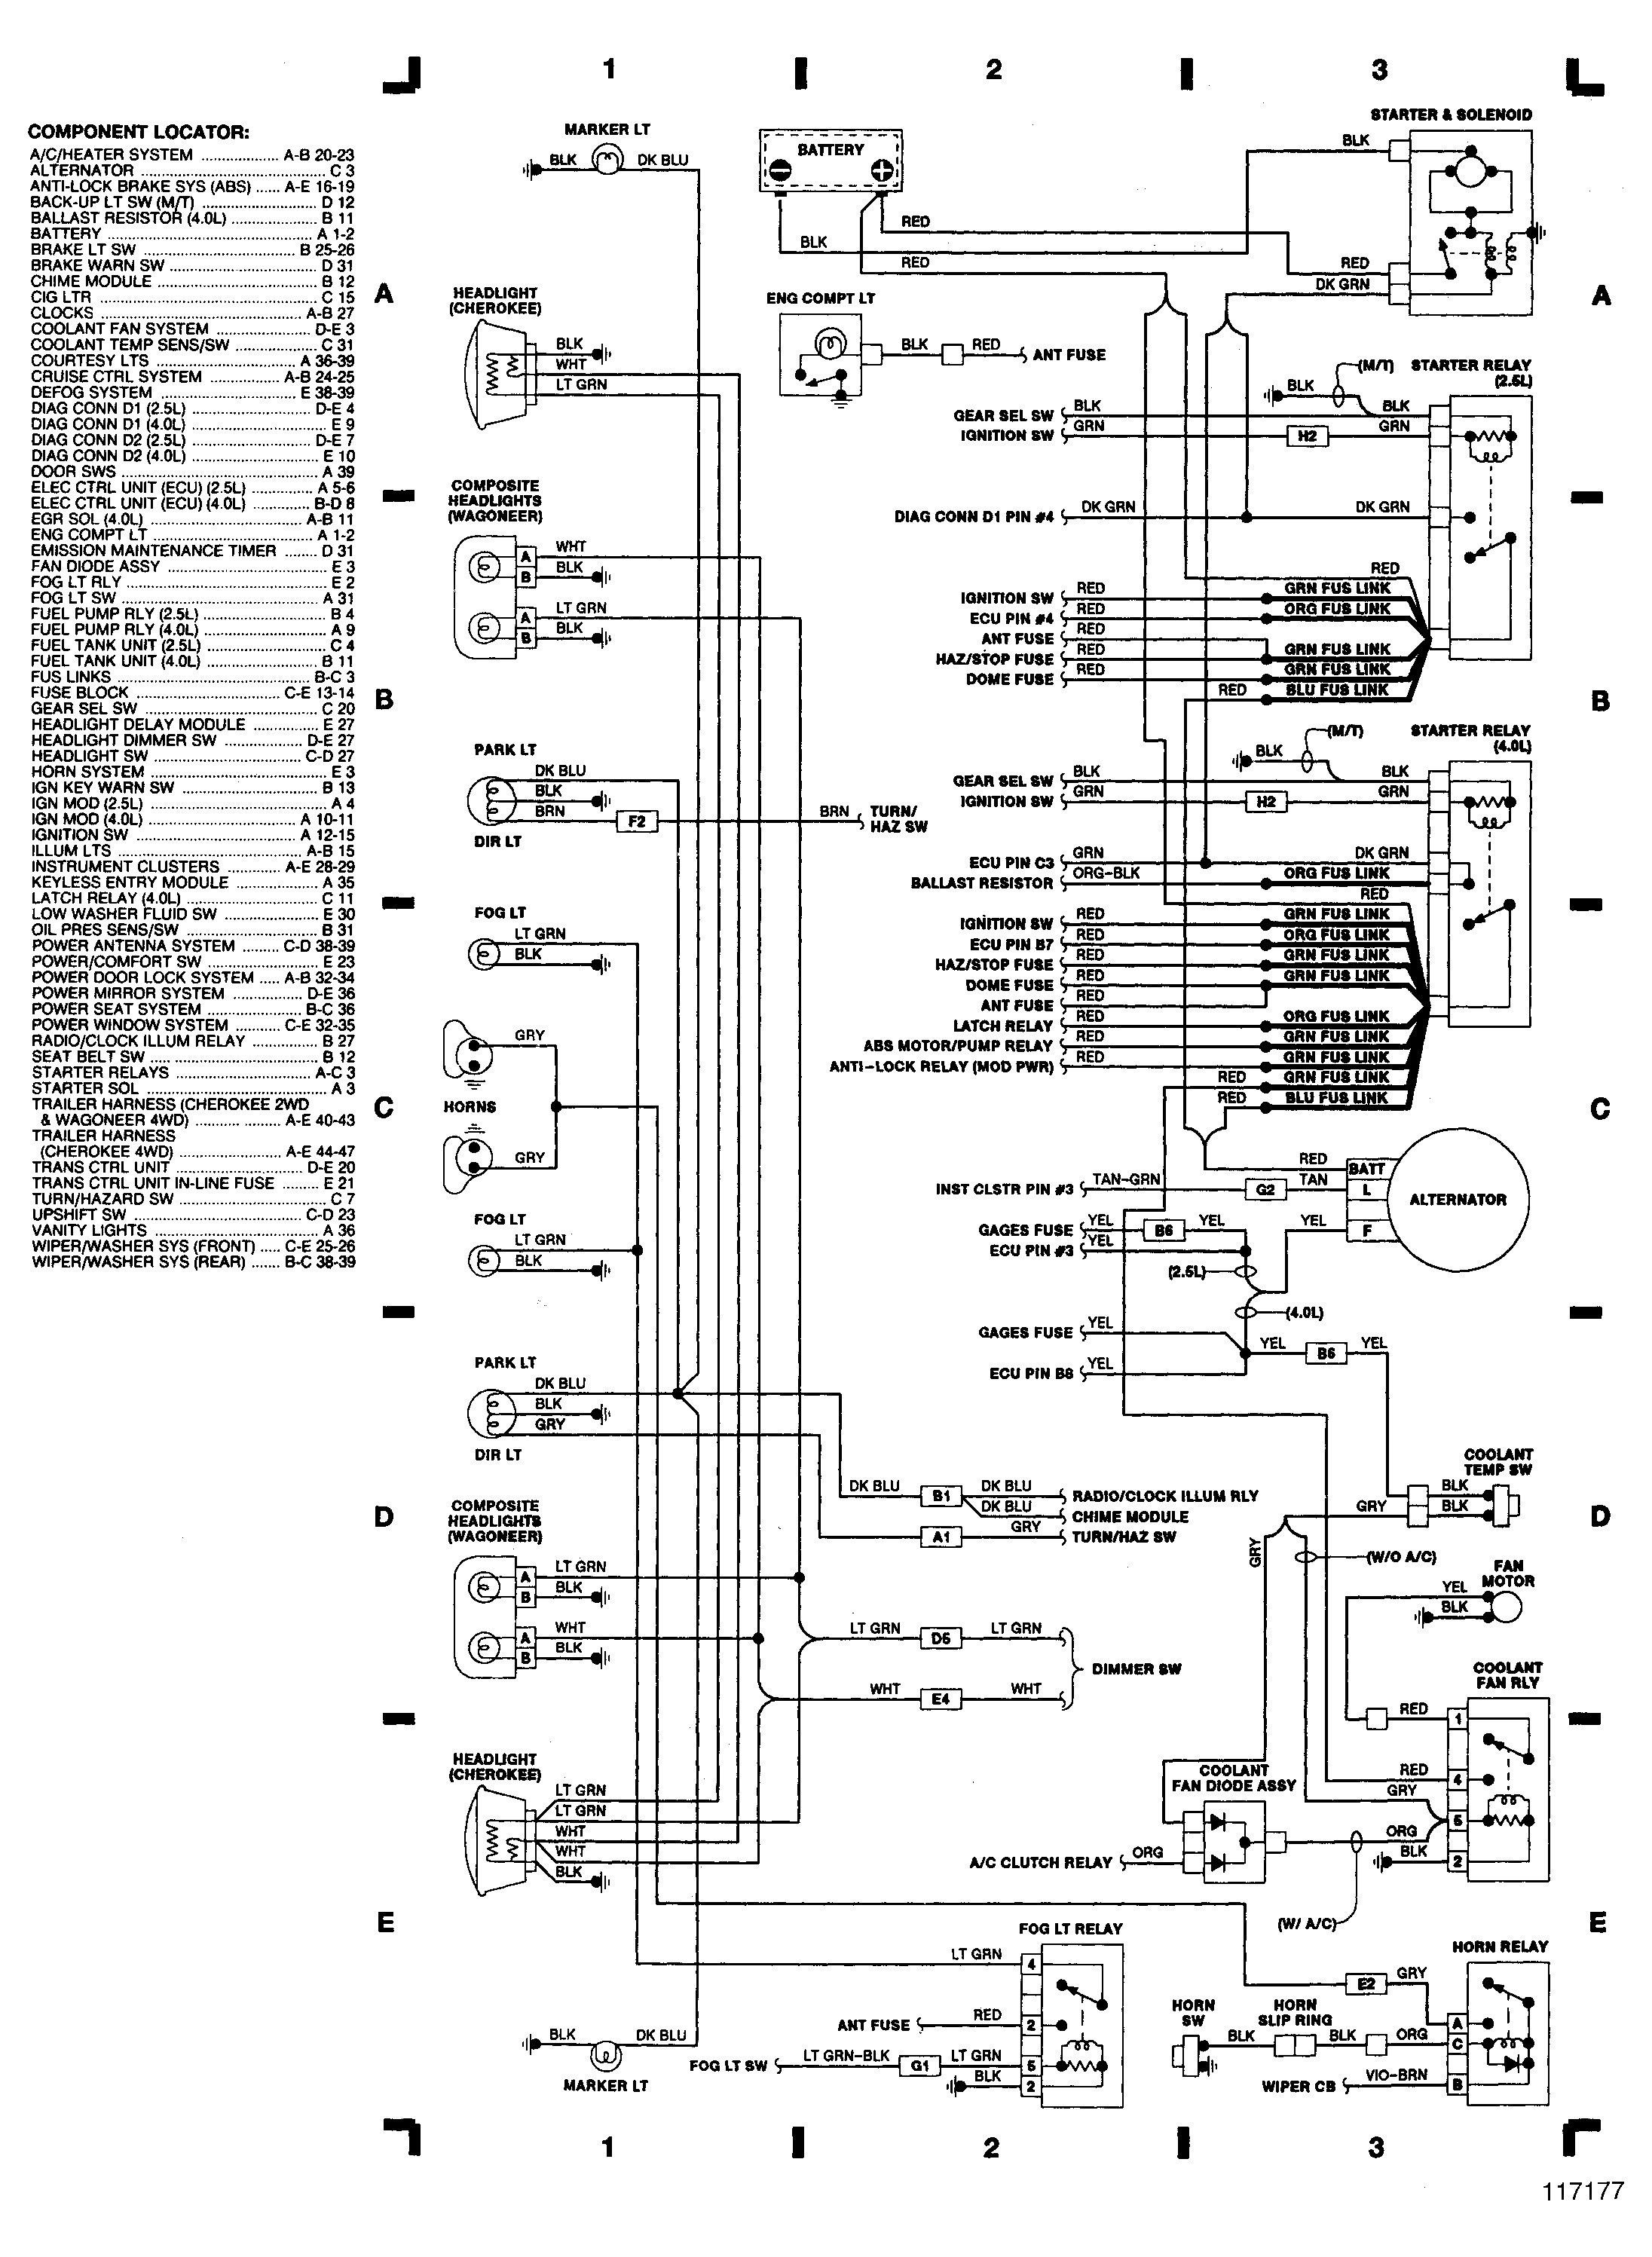 Fresh Wiring Diagram Yamaha Aerox Diagrams Digramssample Diagramimages Wiringdiagramsample Wiringdiagram